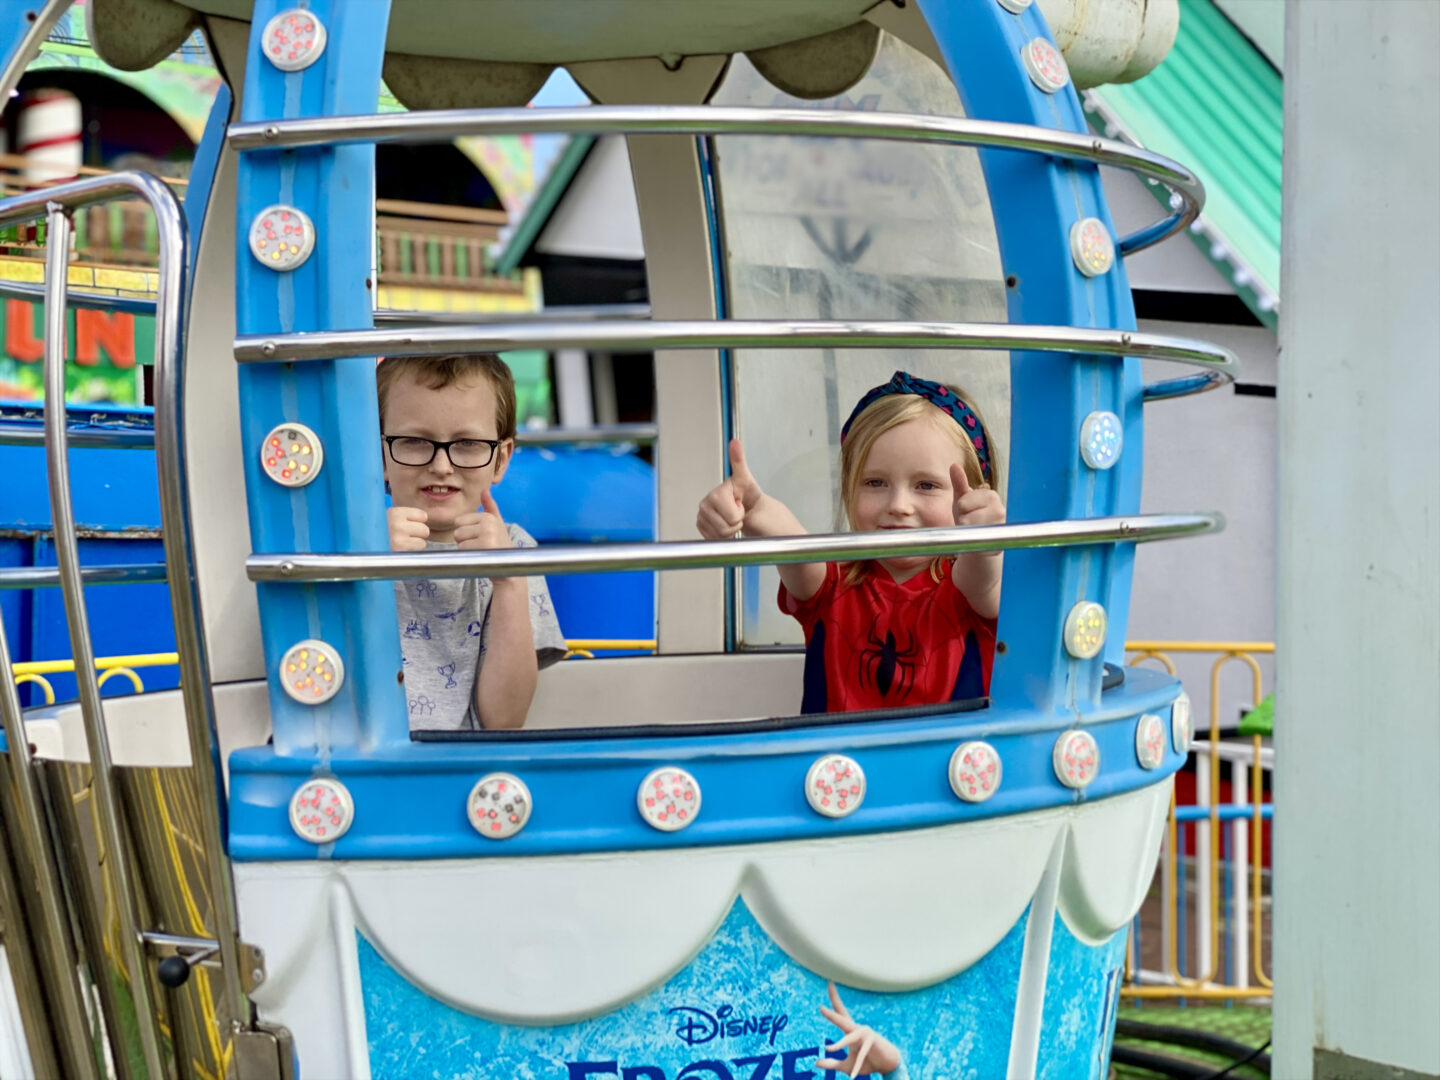 a boy and girl smiling on a ferris wheel ride